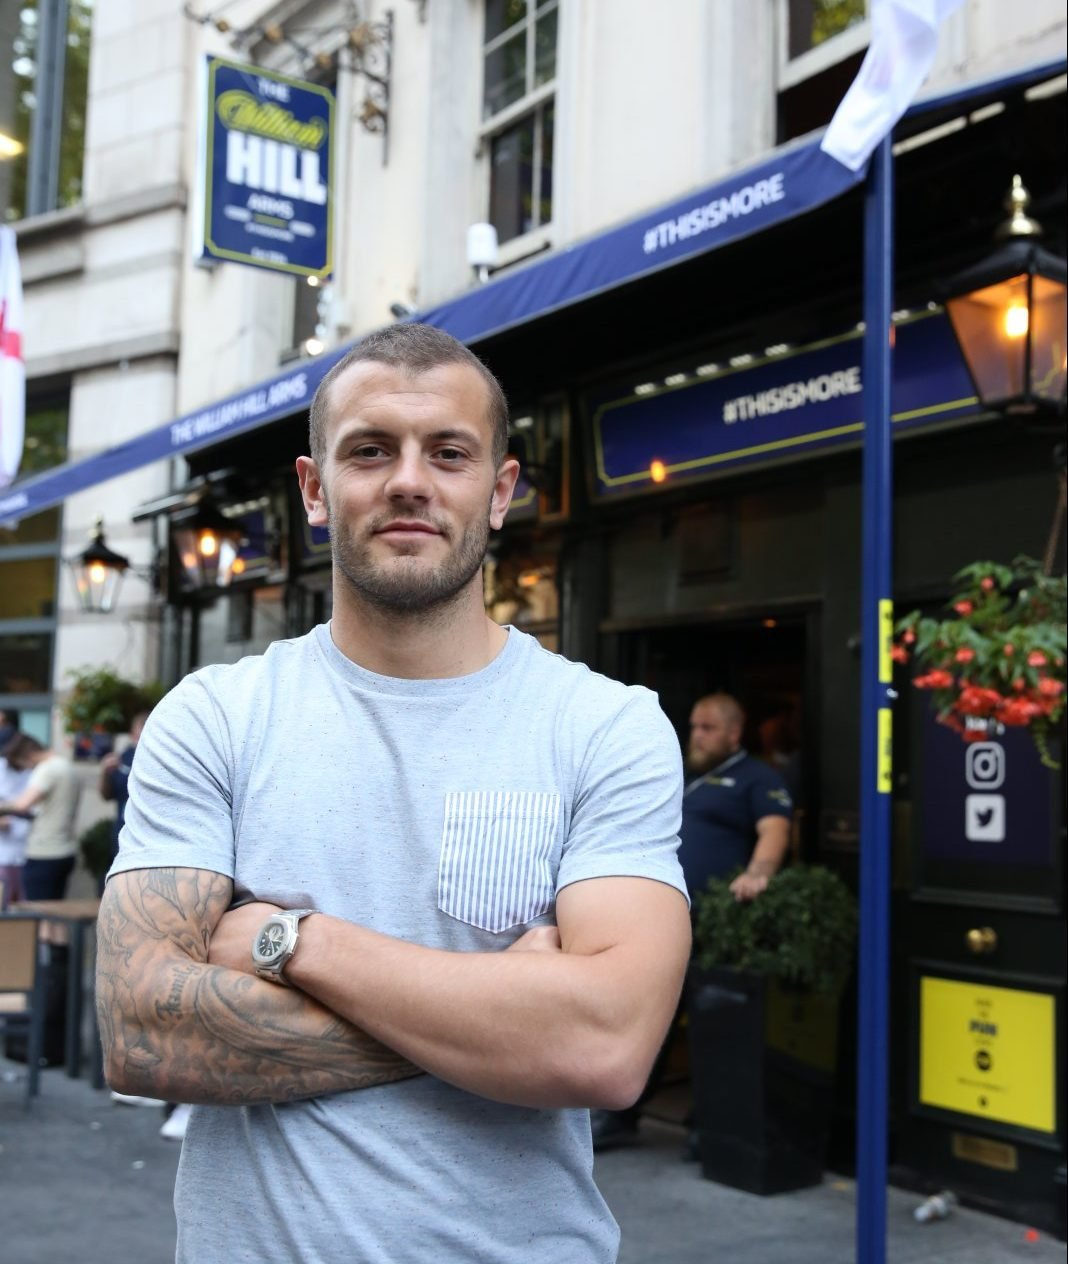 England and the 2018 World Cup: Jack Wilshere meets Football FanCast